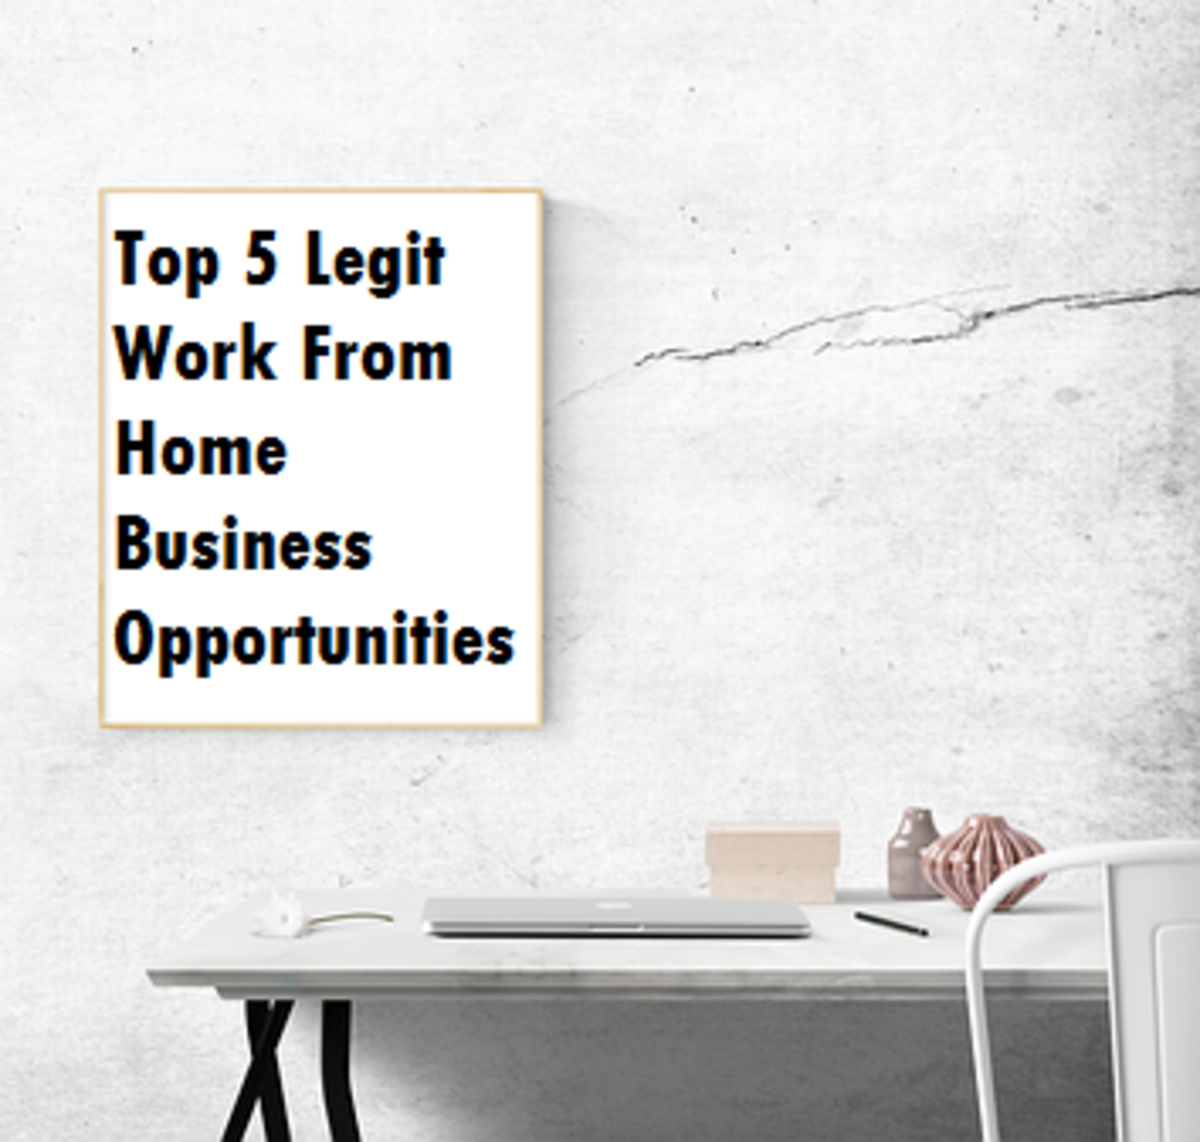 Top 5 Legit Work From Home Business Opportunities